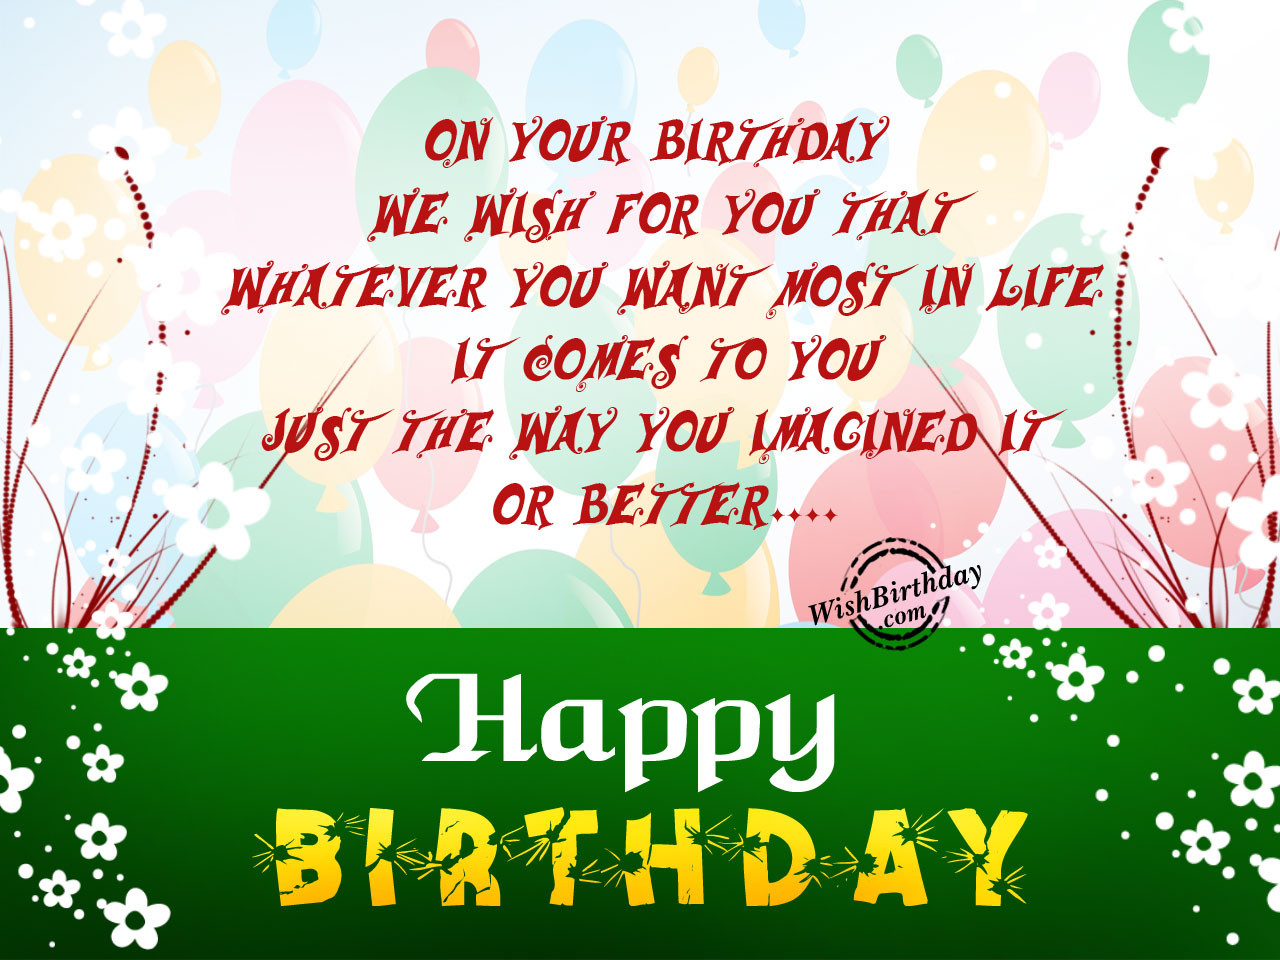 Best ideas about Wish You Happy Birthday . Save or Pin Birthday Wishes With Balloons Birthday Now.